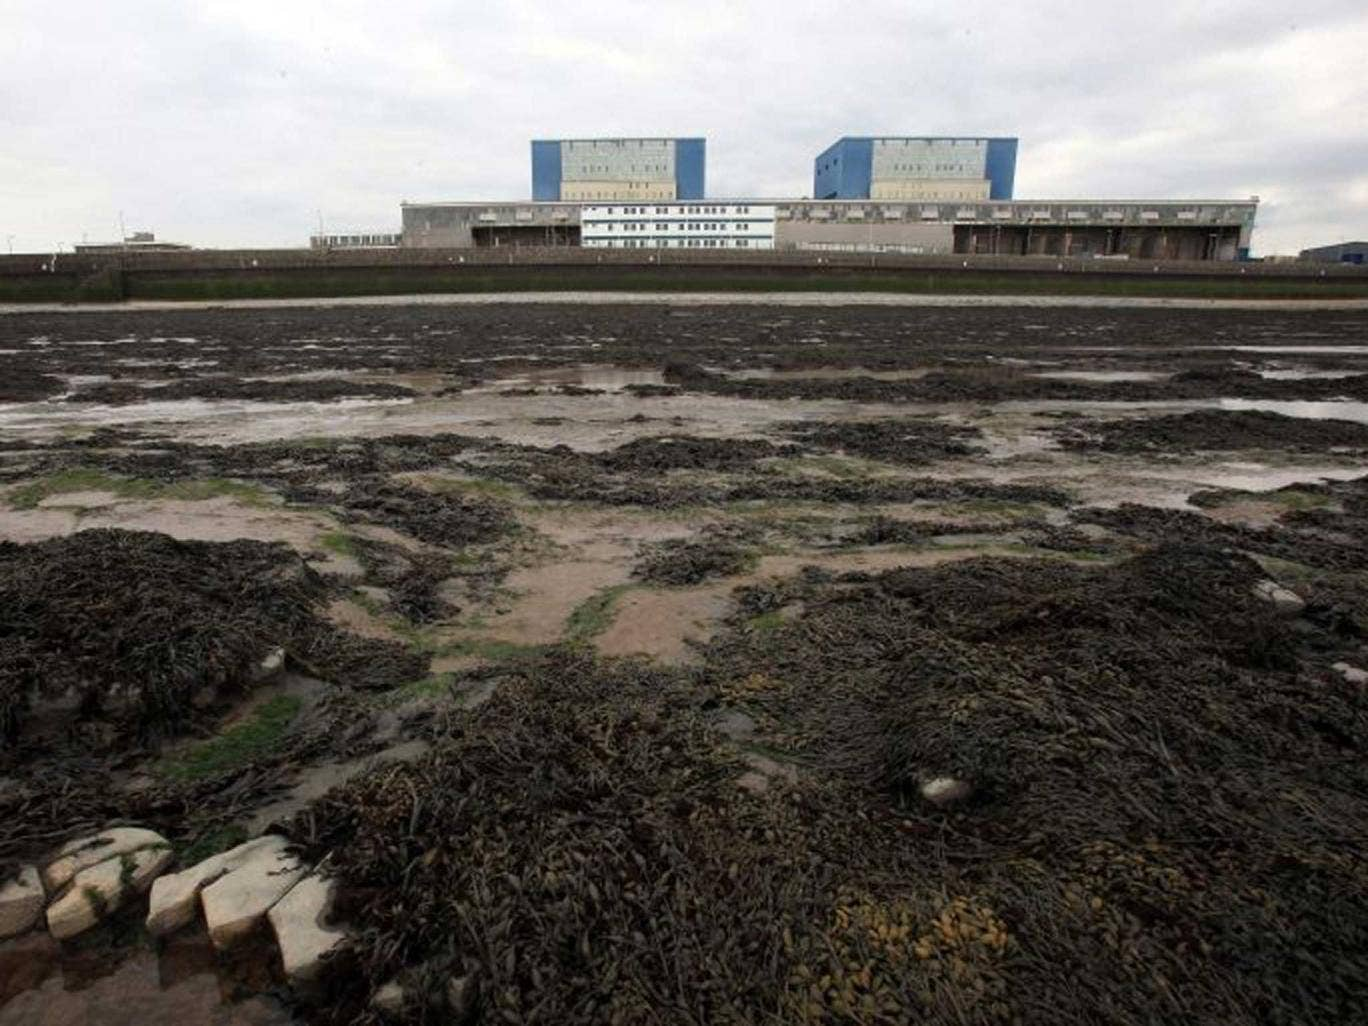 The Hinkley Point A nuclear power station was shut down in 2000